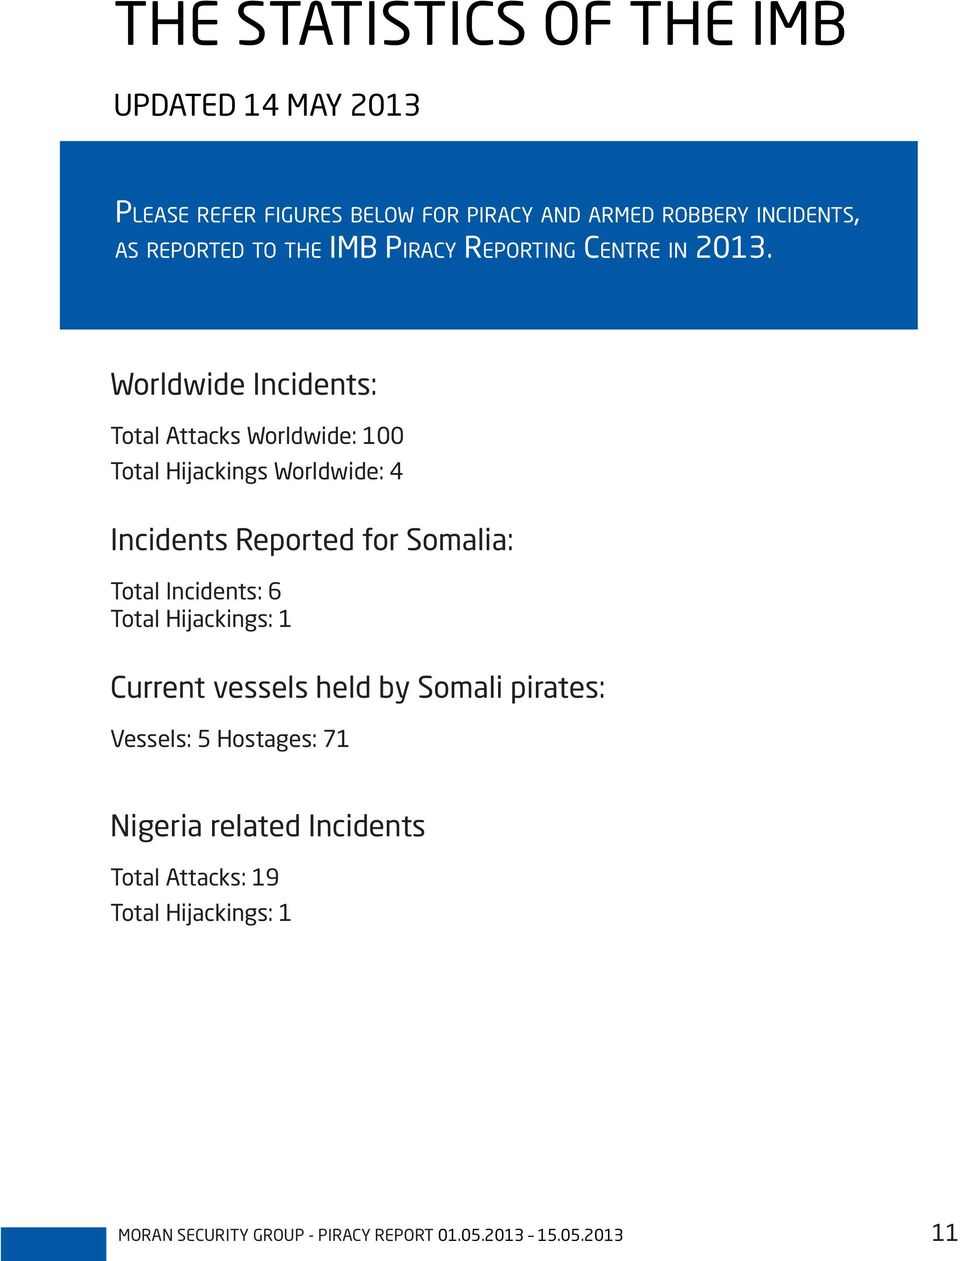 Worldwide Incidents: Total Attacks Worldwide: 100 Total Hijackings Worldwide: 4 Incidents Reported for Somalia: